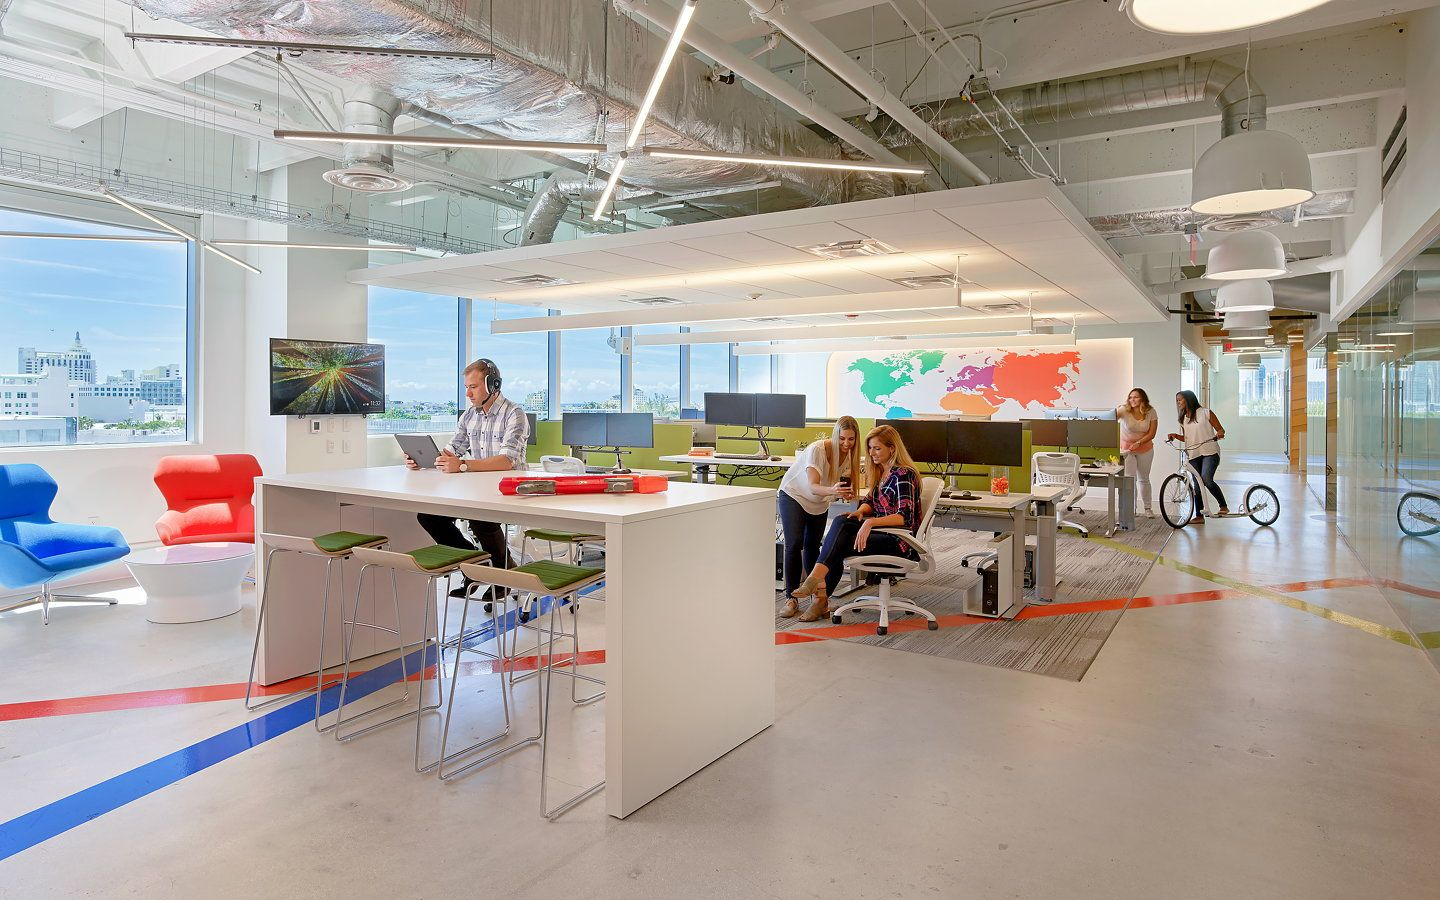 Stantec Designs Wix's Office and Technical Call Center in